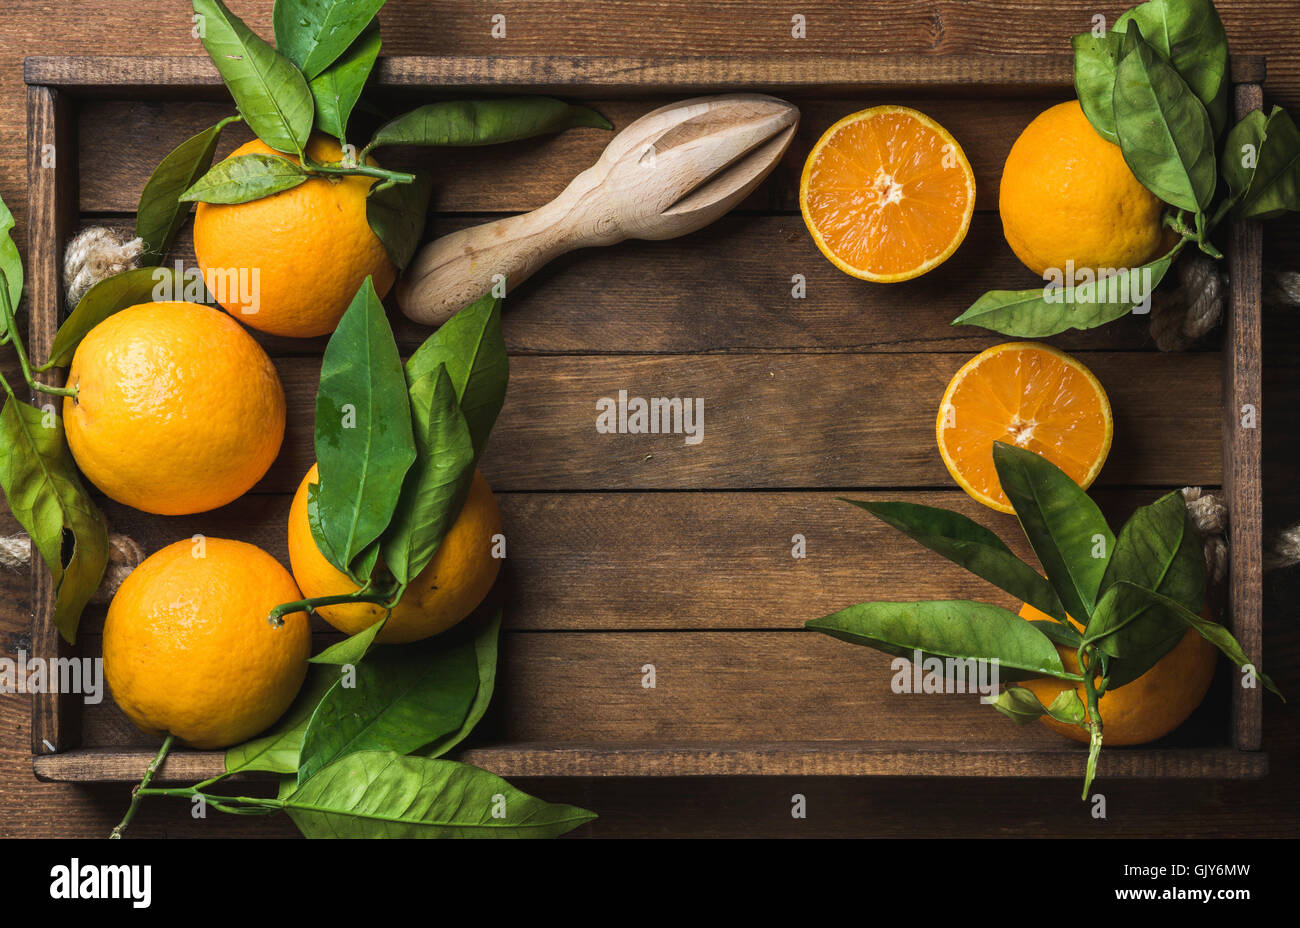 Fresh oranges with leaves in dark wooden tray over wooden background, top view, copy space, horizontal composition - Stock Image